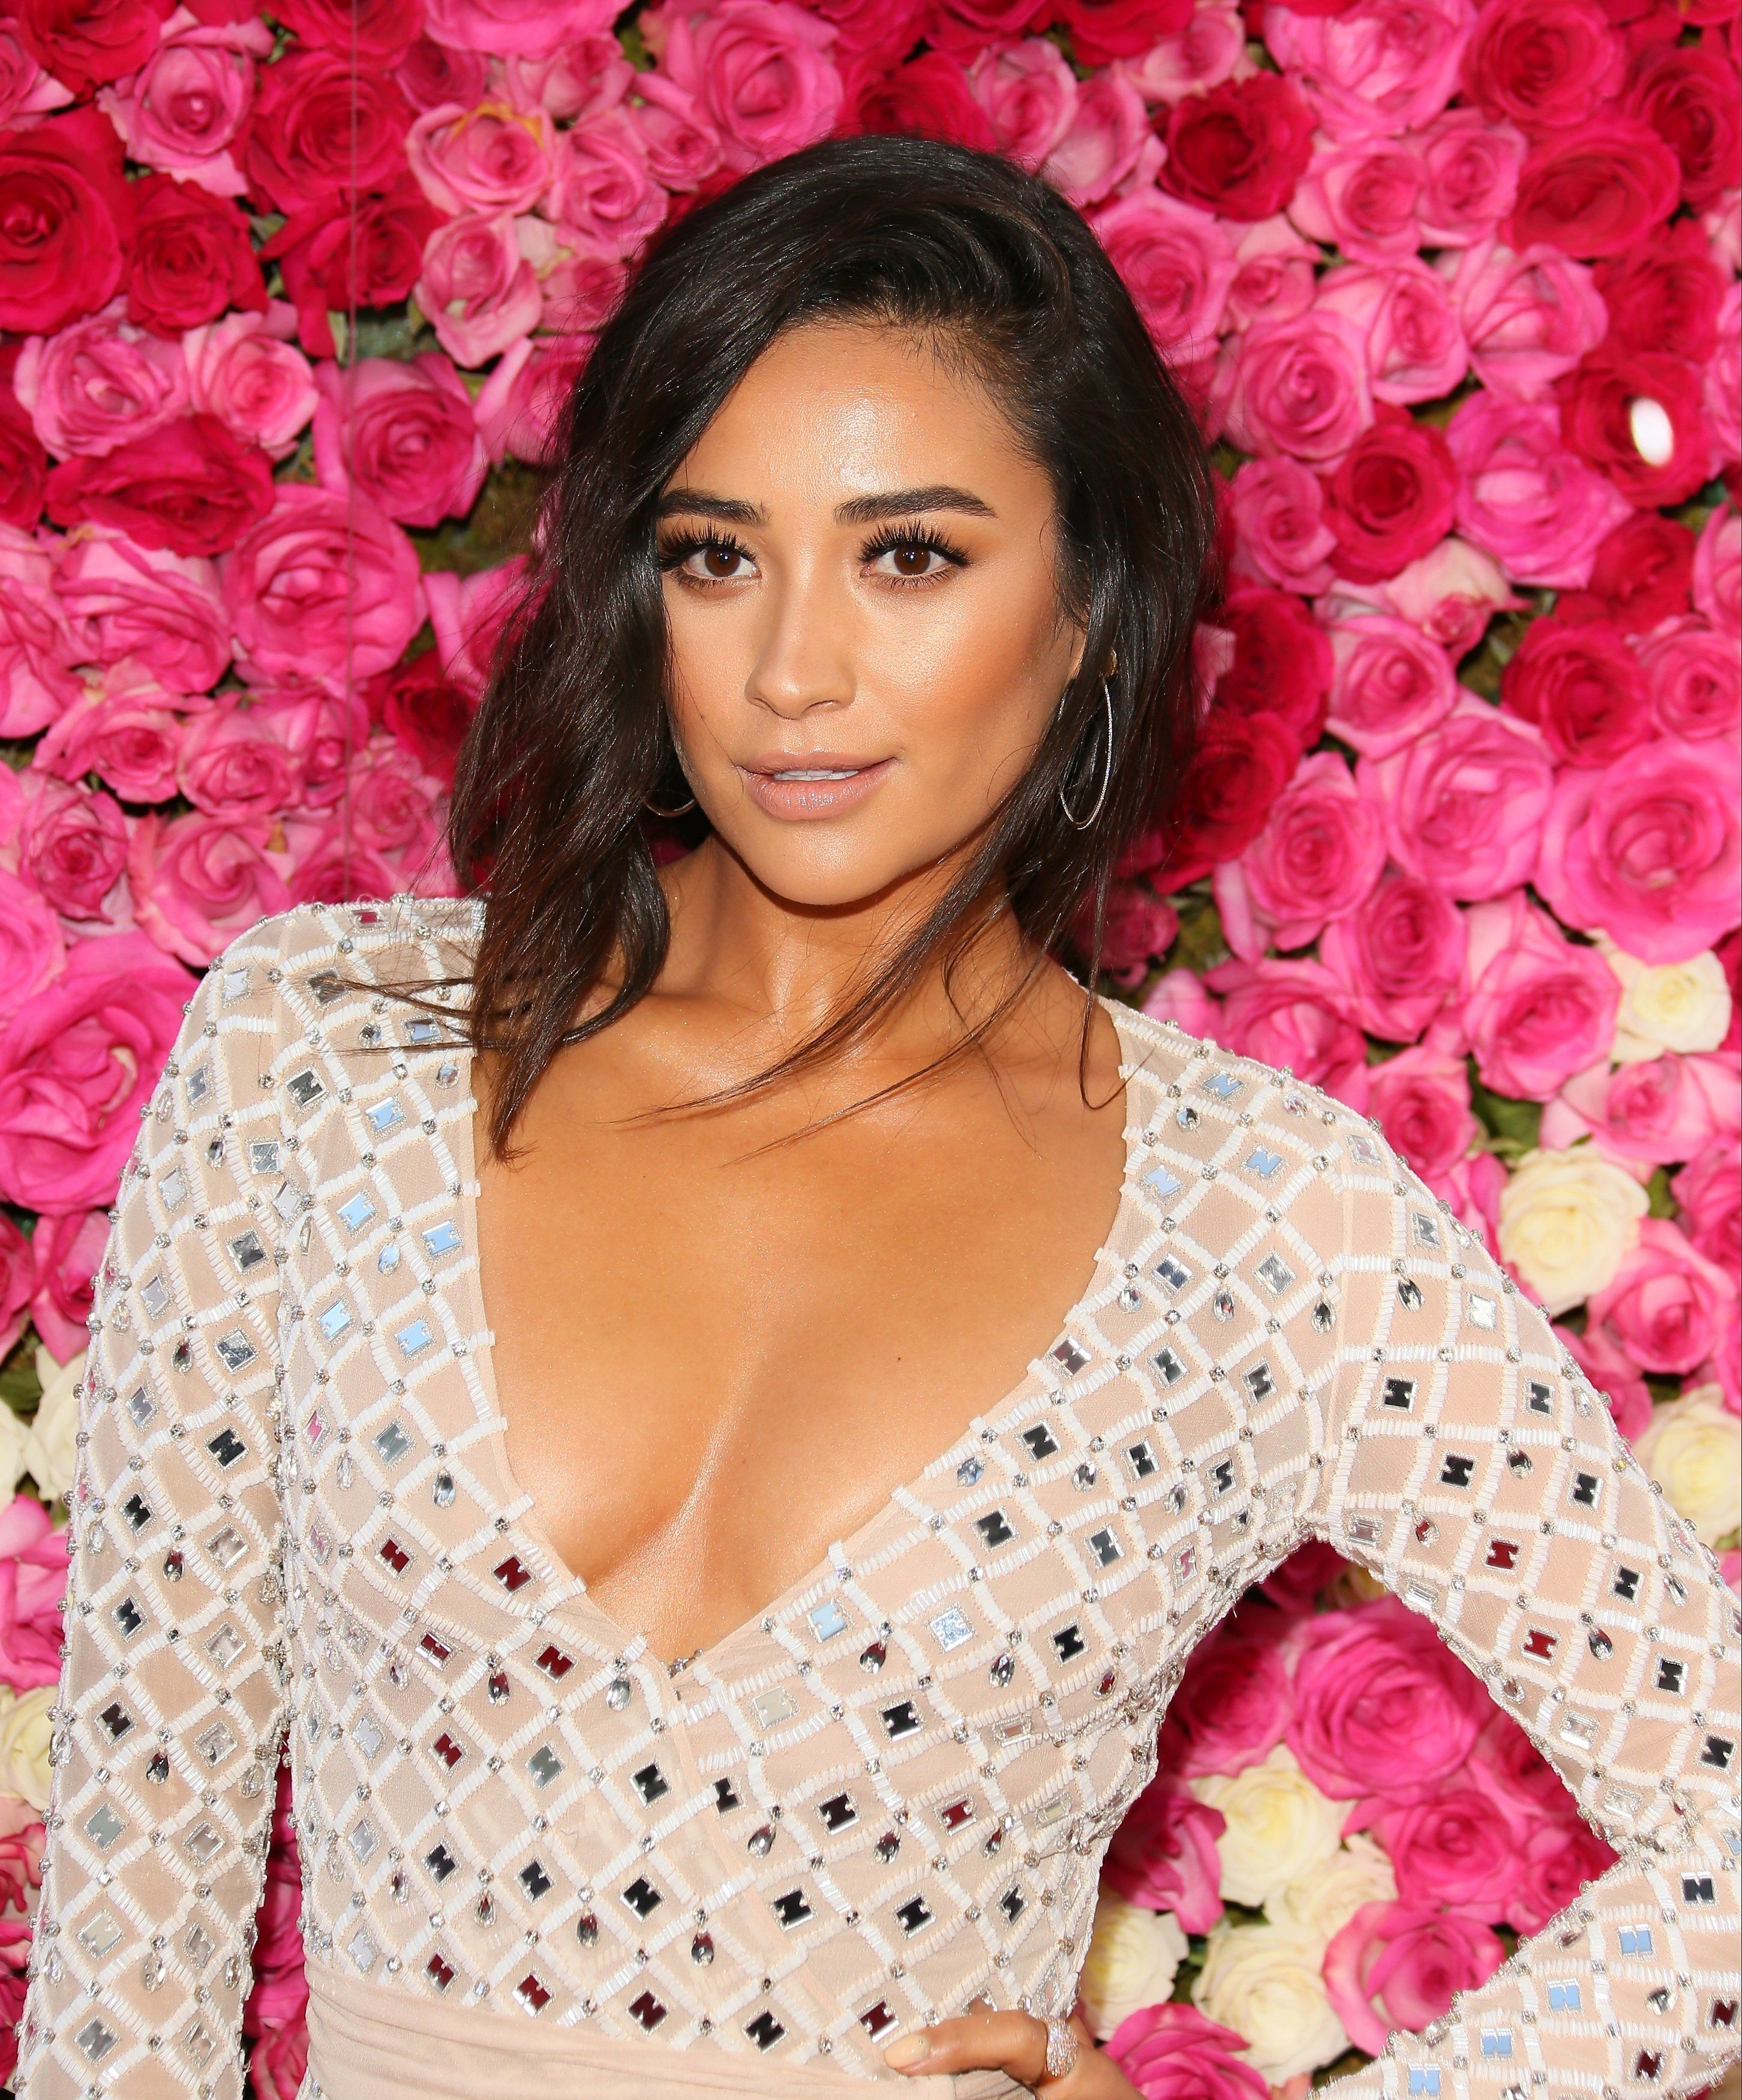 HOLLYWOOD, CA - APRIL 13: Shay Mitchell  attends the Open Roads world premiere of 'Mother's Day' held at TCL Chinese theatre on April 13, 2016 in Hollywood, California. (Photo by JB Lacroix/WireImage)